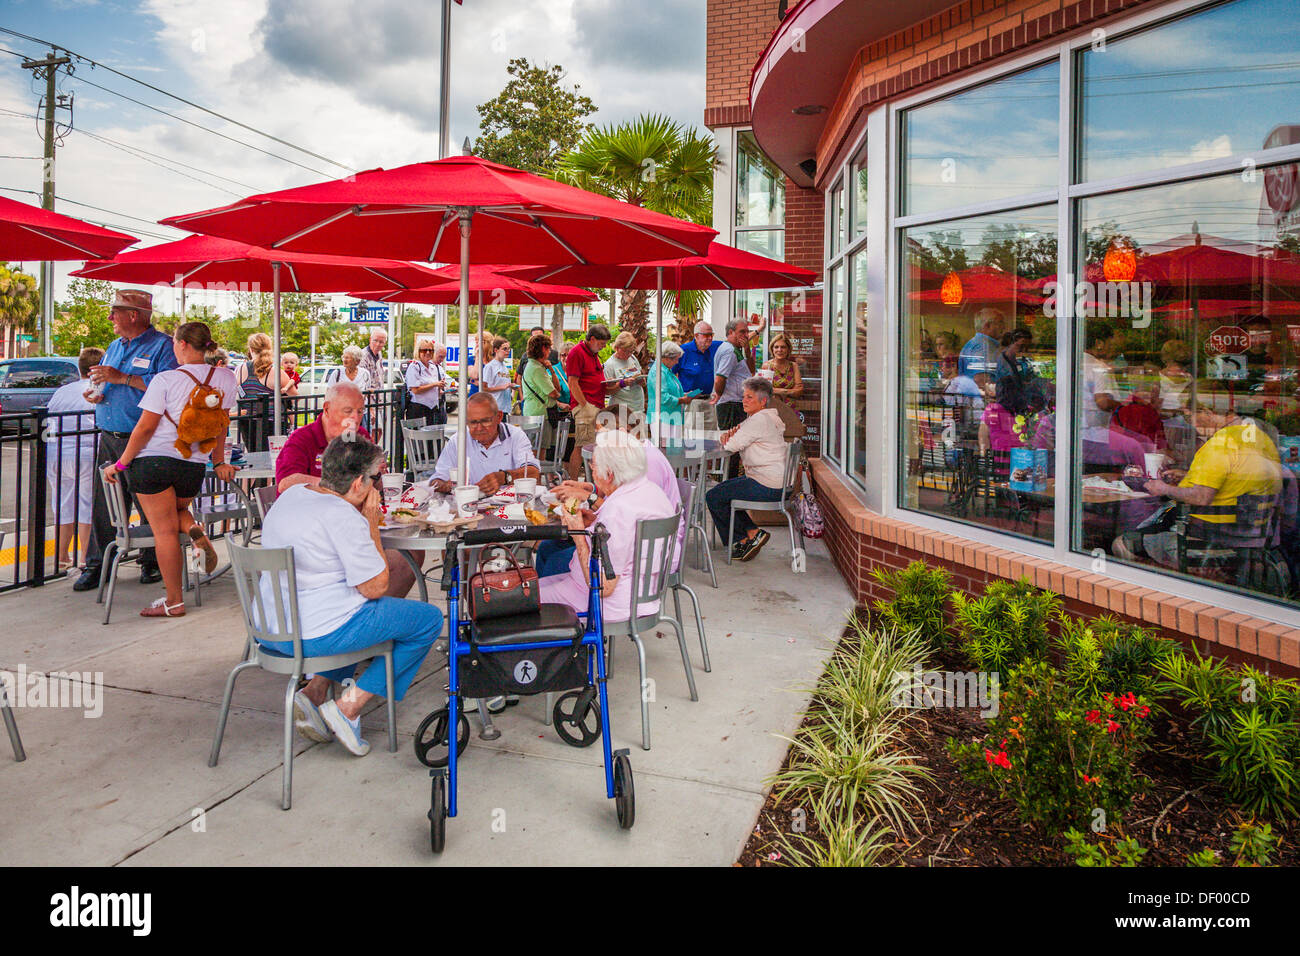 Senior customers eating in front of the Chick-fil-a fast food restaurant in Ocala, Florida in support of Christian values - Stock Image